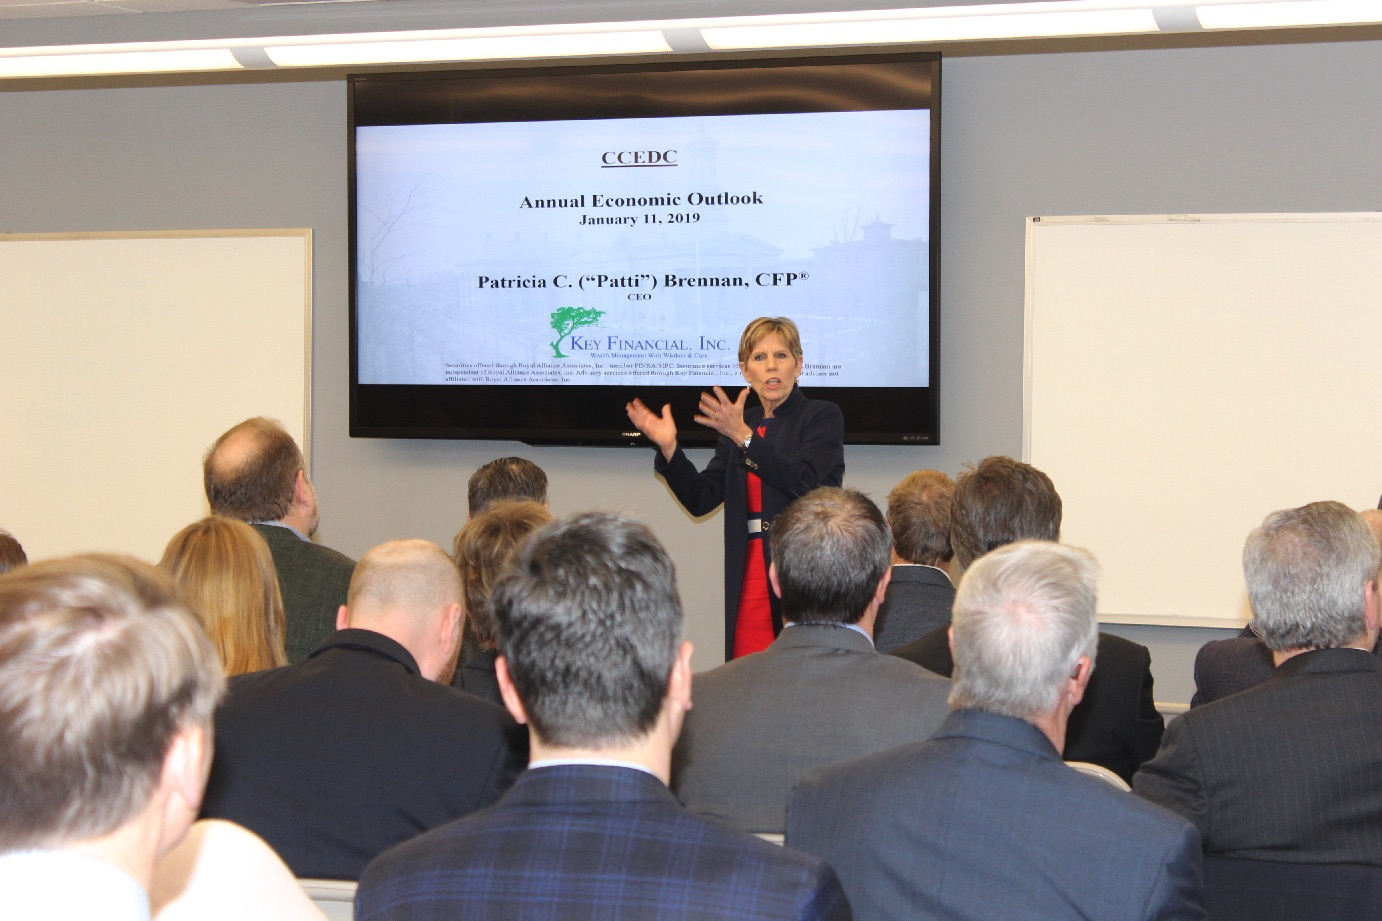 CCEDC Hosts 15th Annual Economic Outlook: Don't Count the Economy Out!